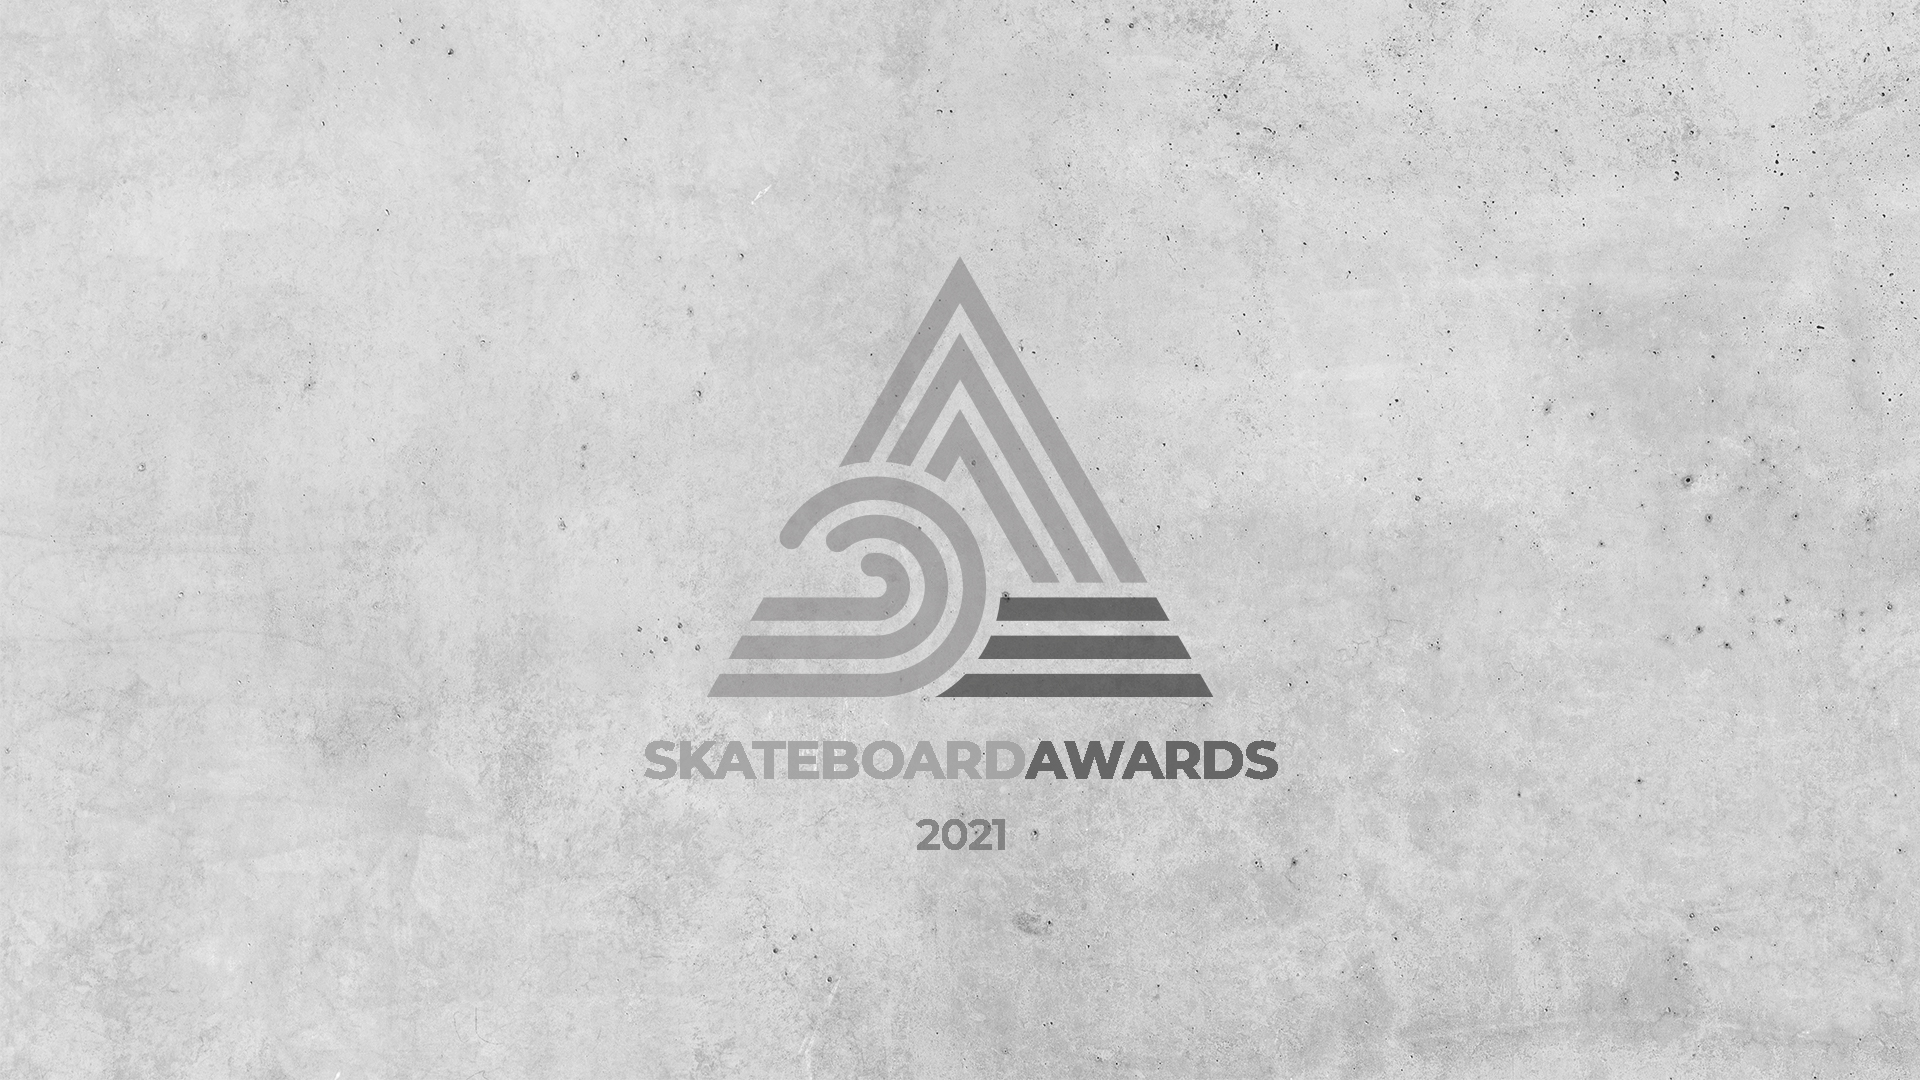 Disse er nominert til SkateboardAwards